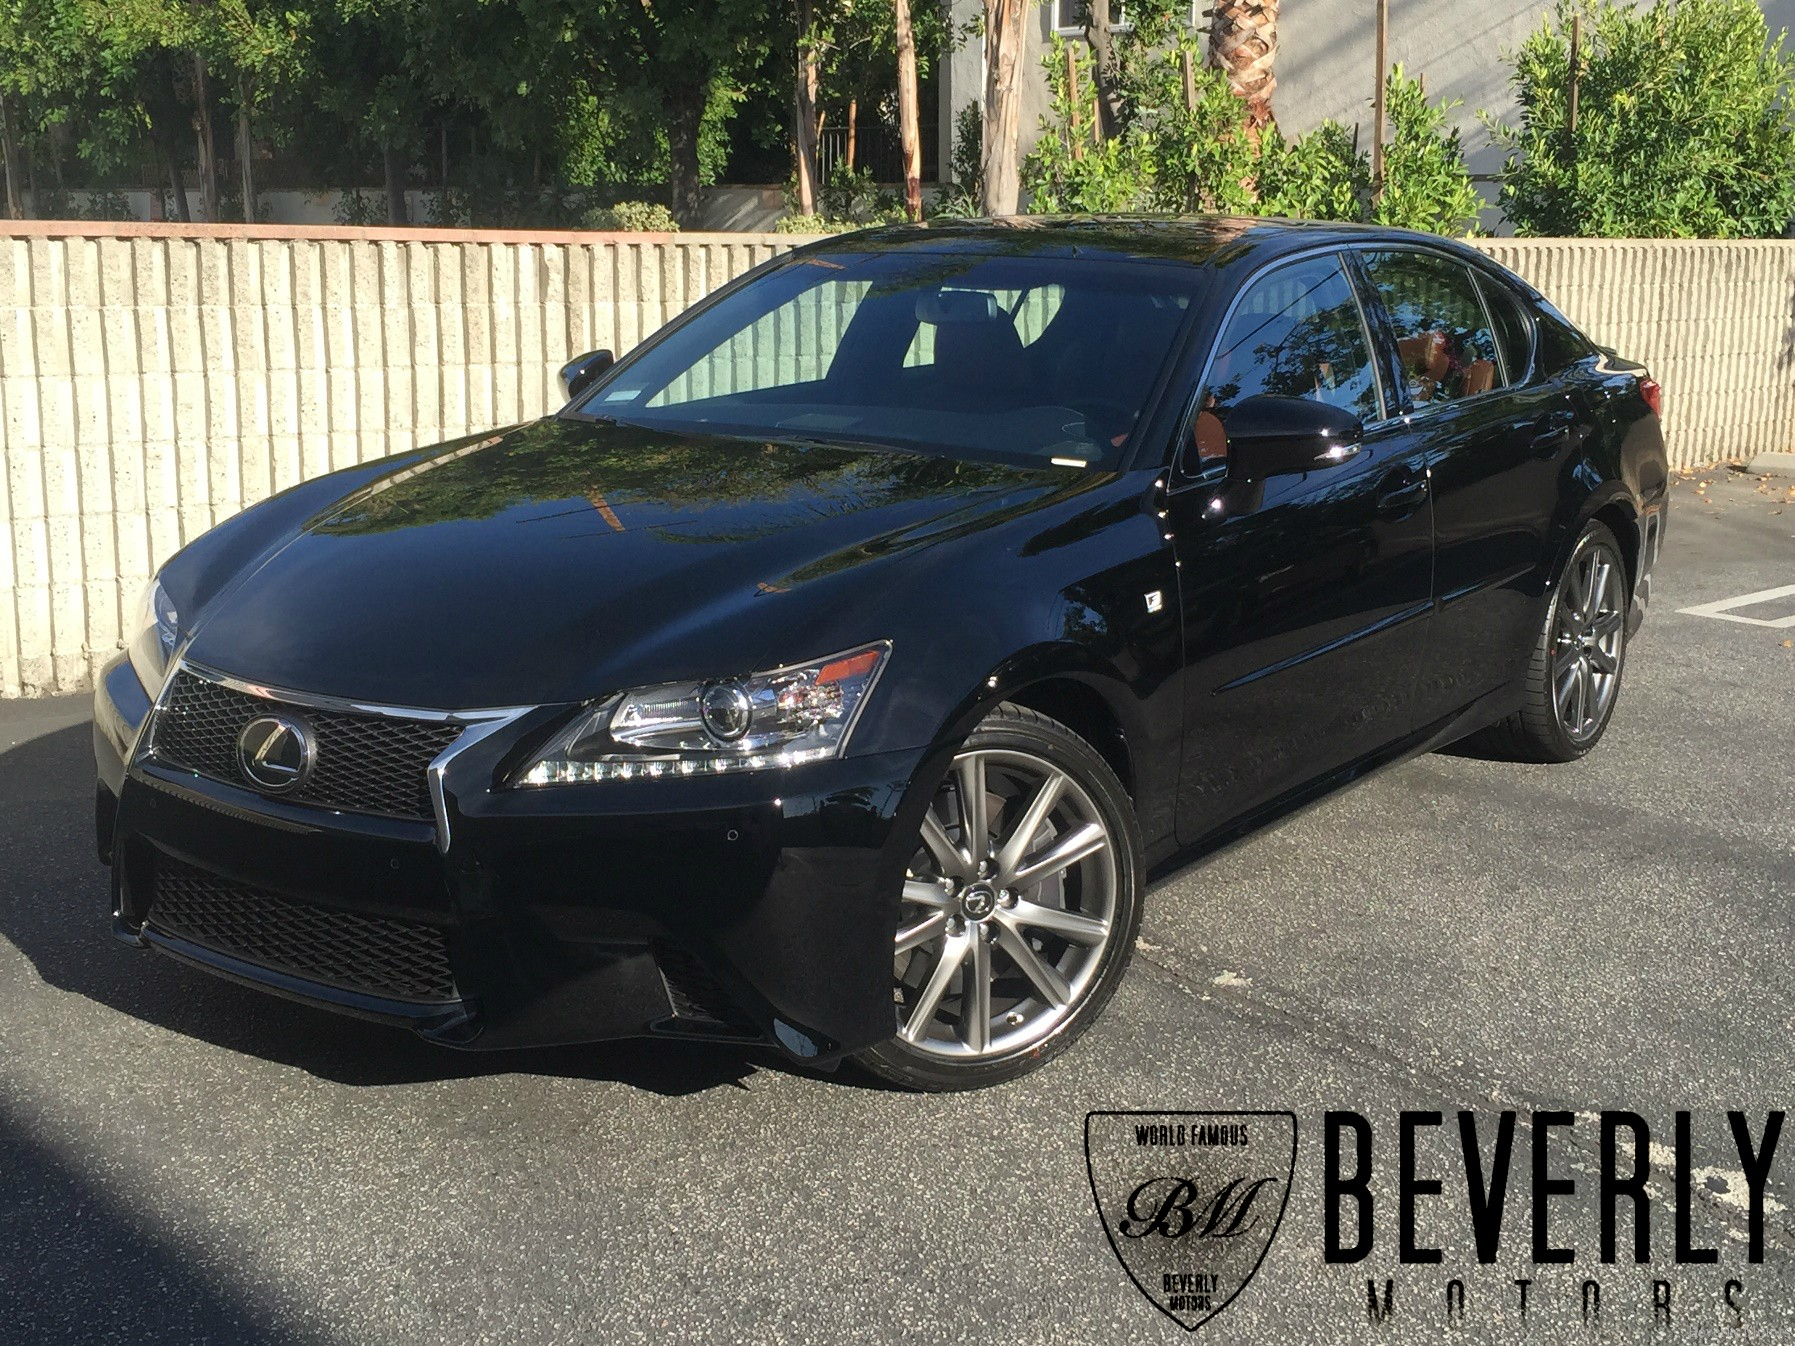 2013 Lexus LS 460 Beverly Motors Inc Glendale Auto Leasing and